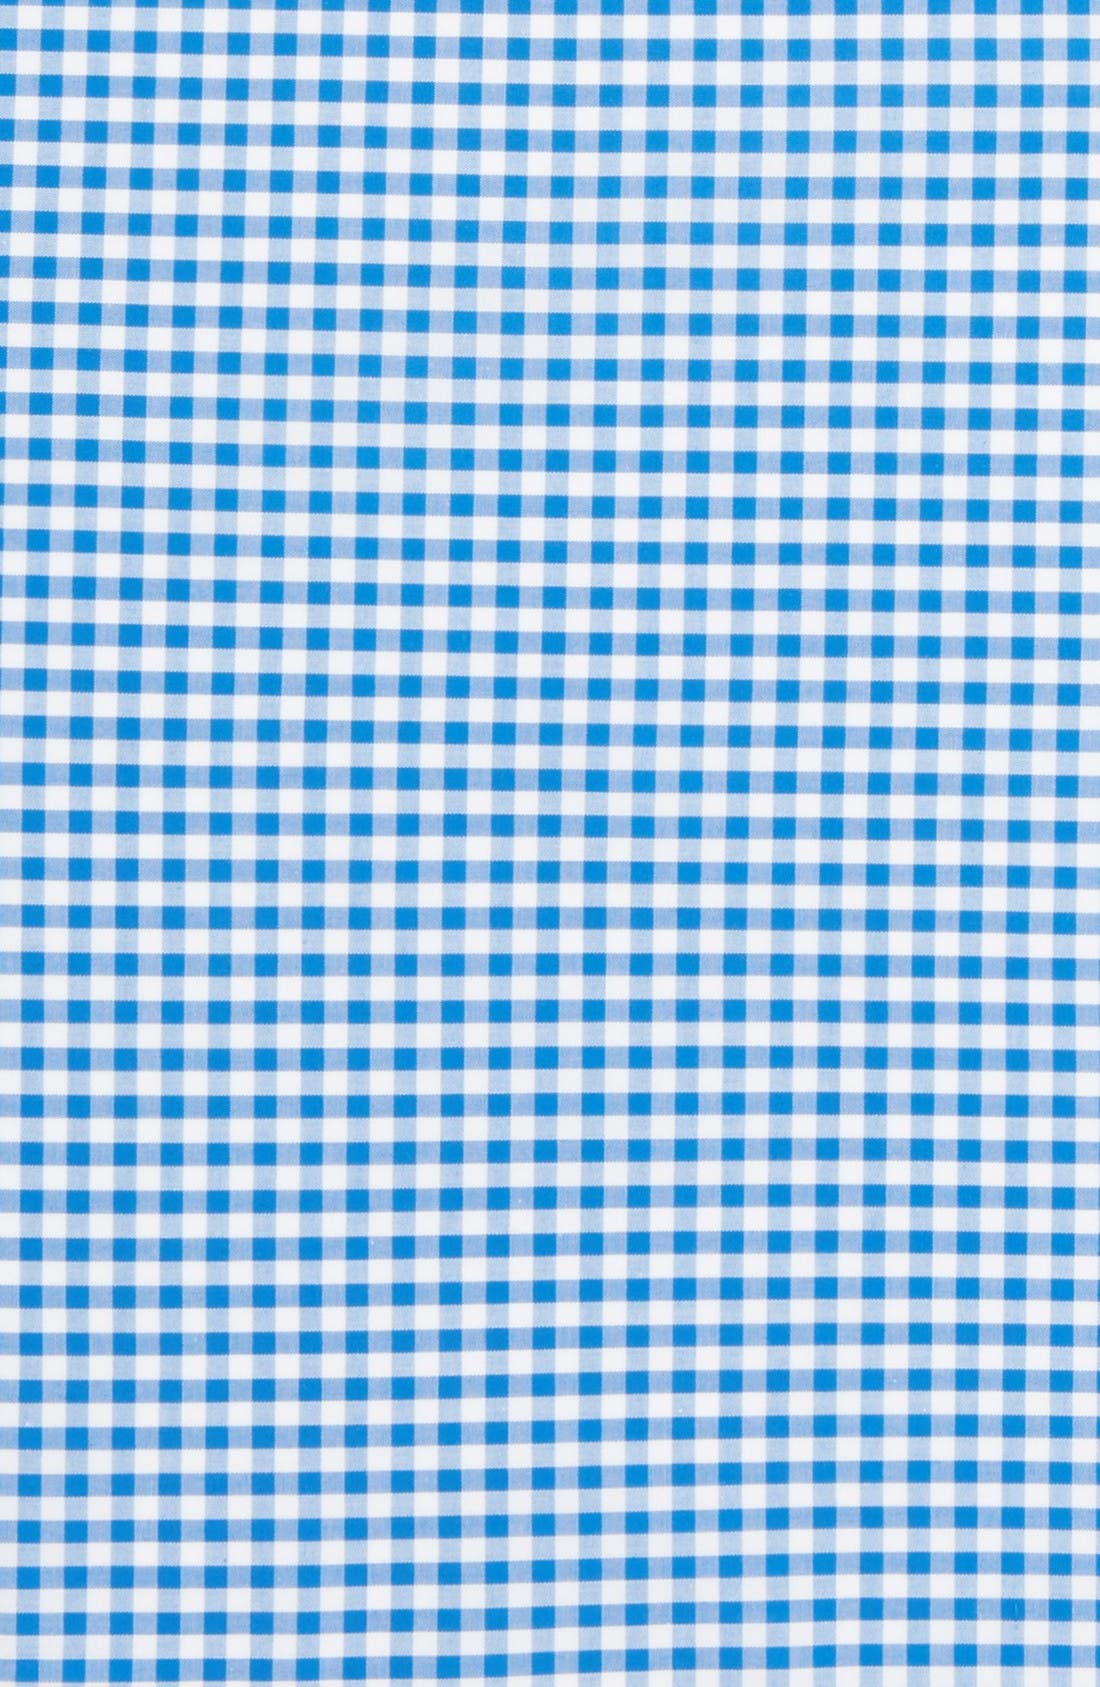 Alternate Image 3  - The Tie Bar Cotton Gingham Pocket Square (Online Only)